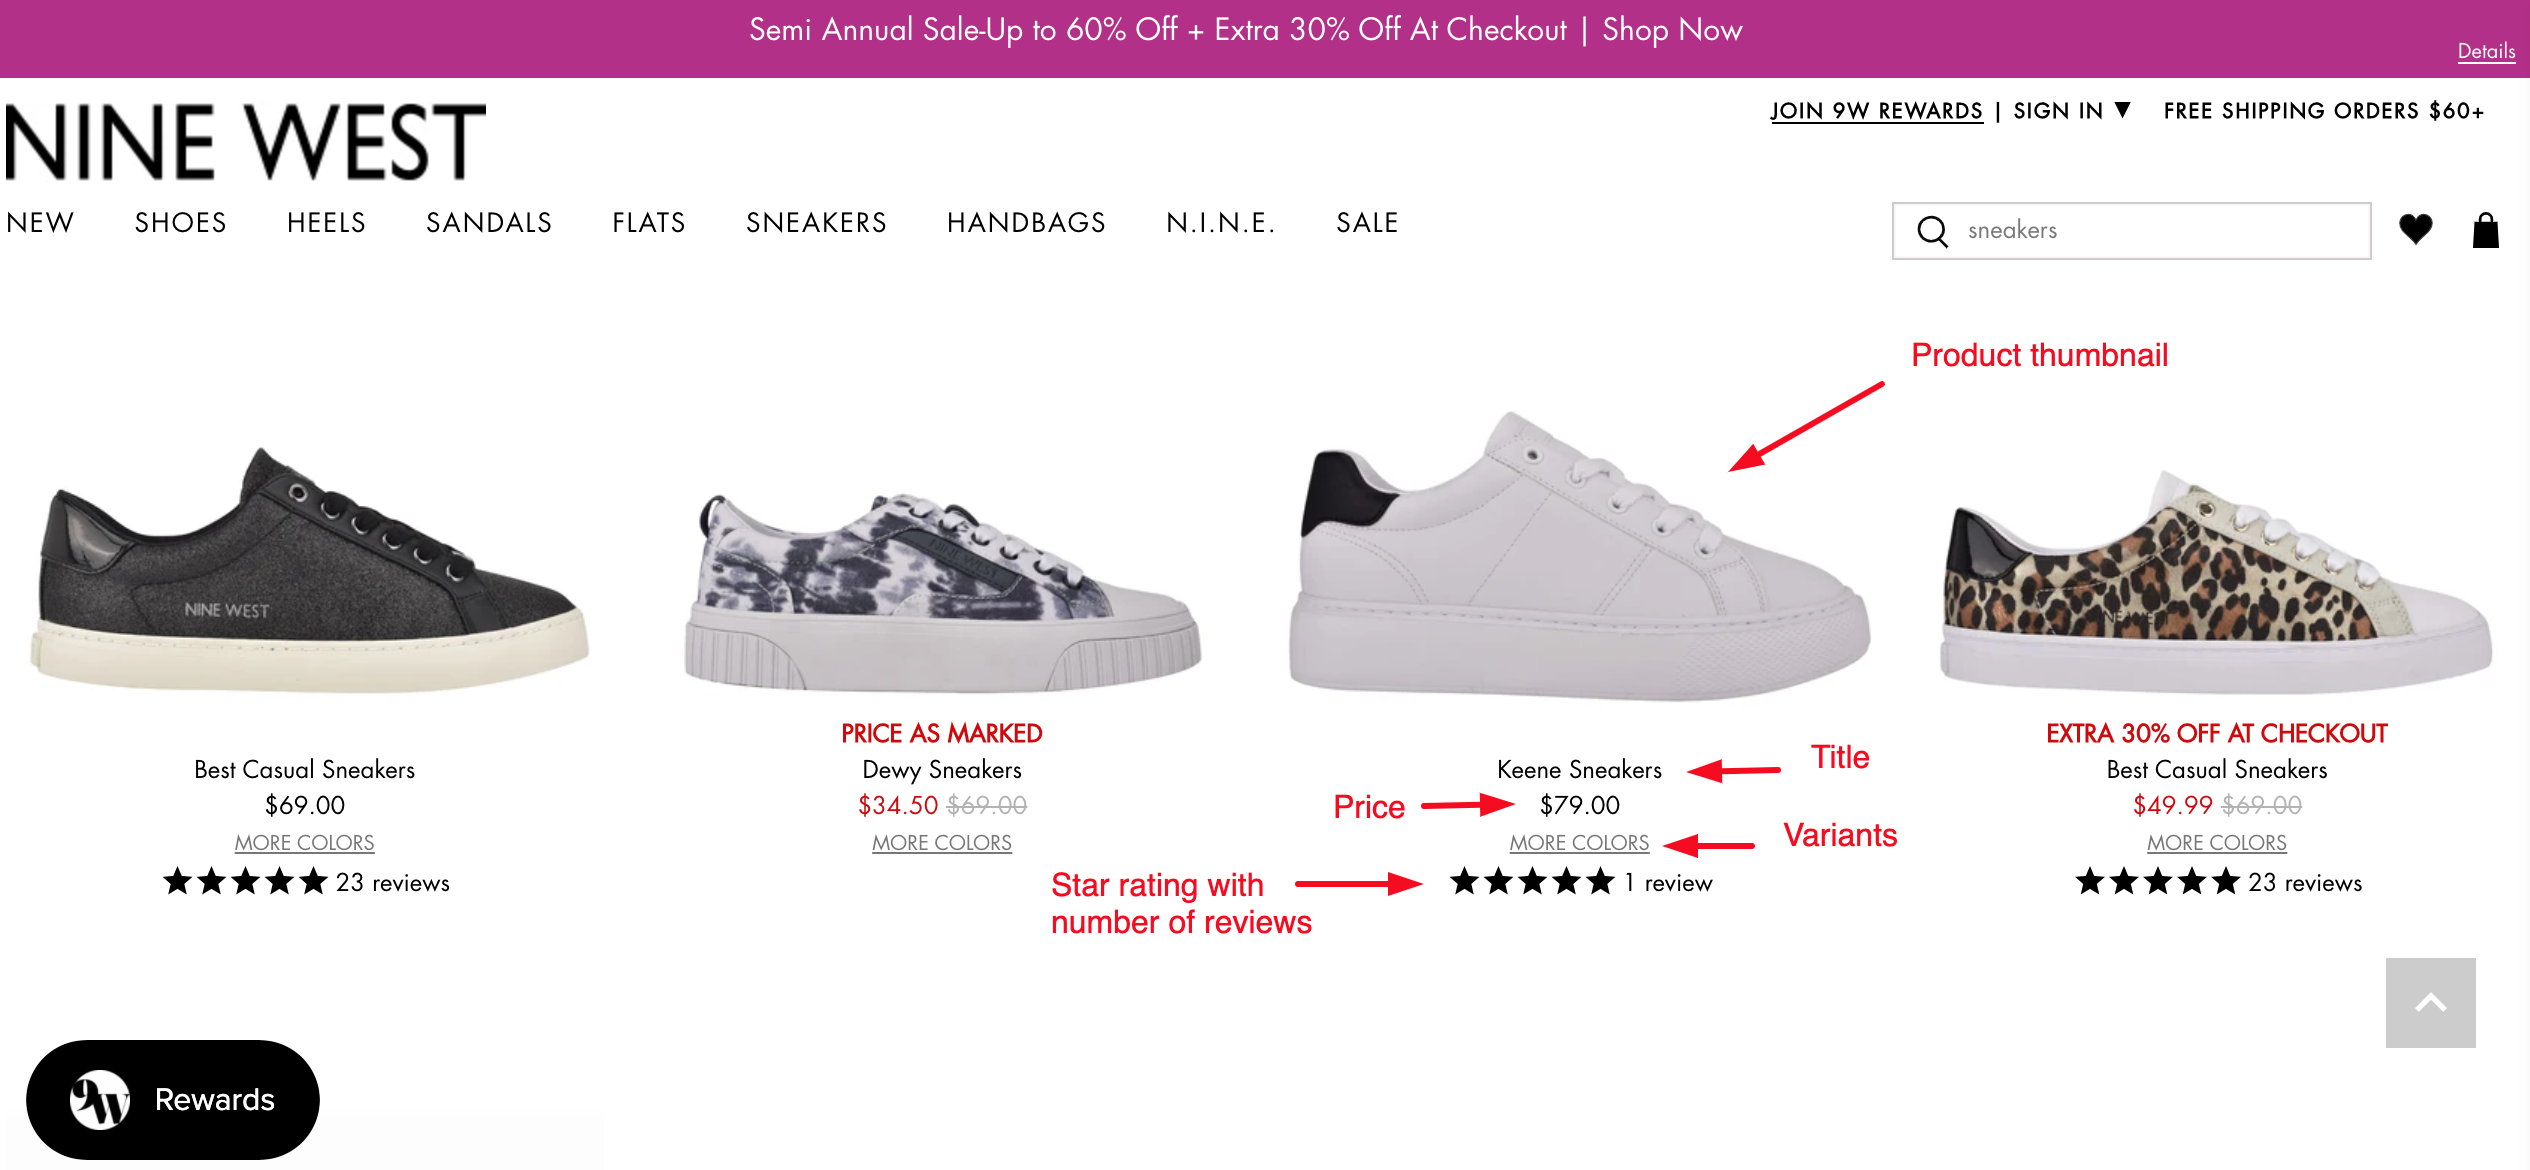 sufficient product info on search result list Shopify search results